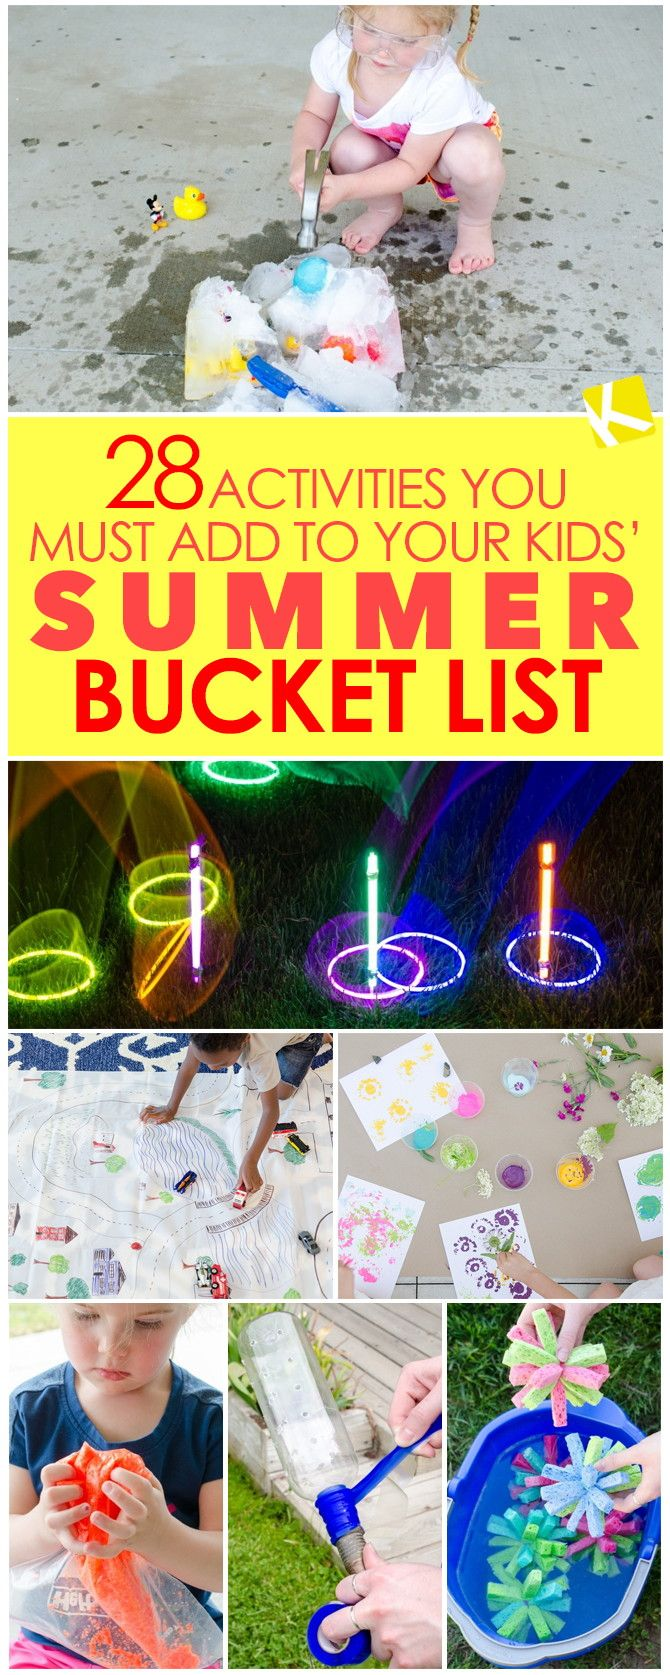 Try making a Summer Bucket List with your kids to keep boredom at bay. Here are 28 bucket list items to get you started:   1. Have...